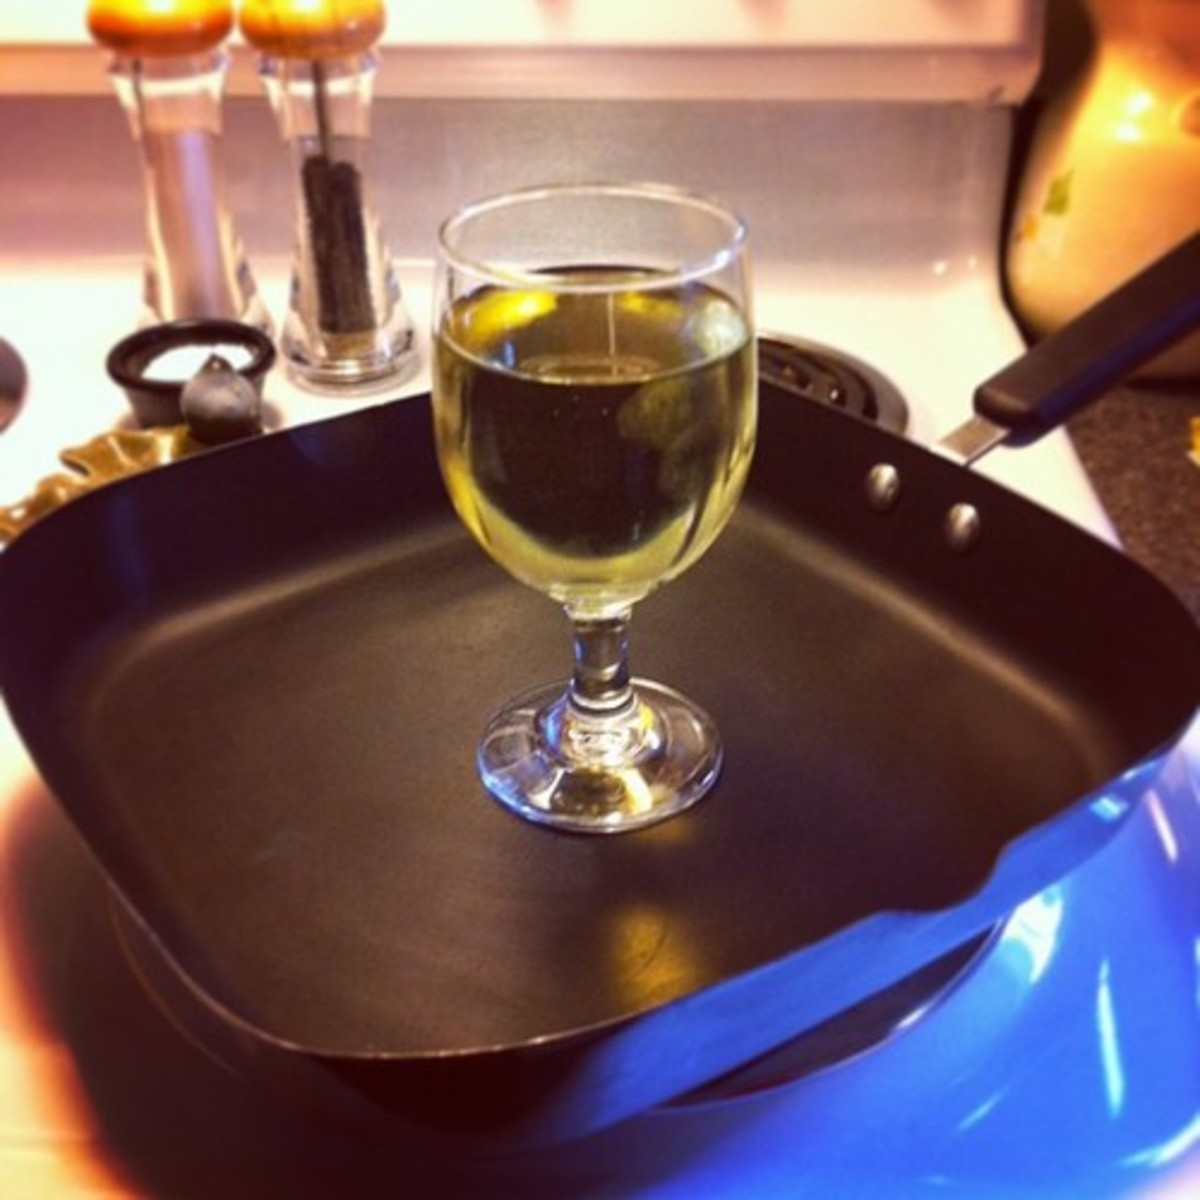 A nice glass of Chardonnay to make things a little more enjoyable.